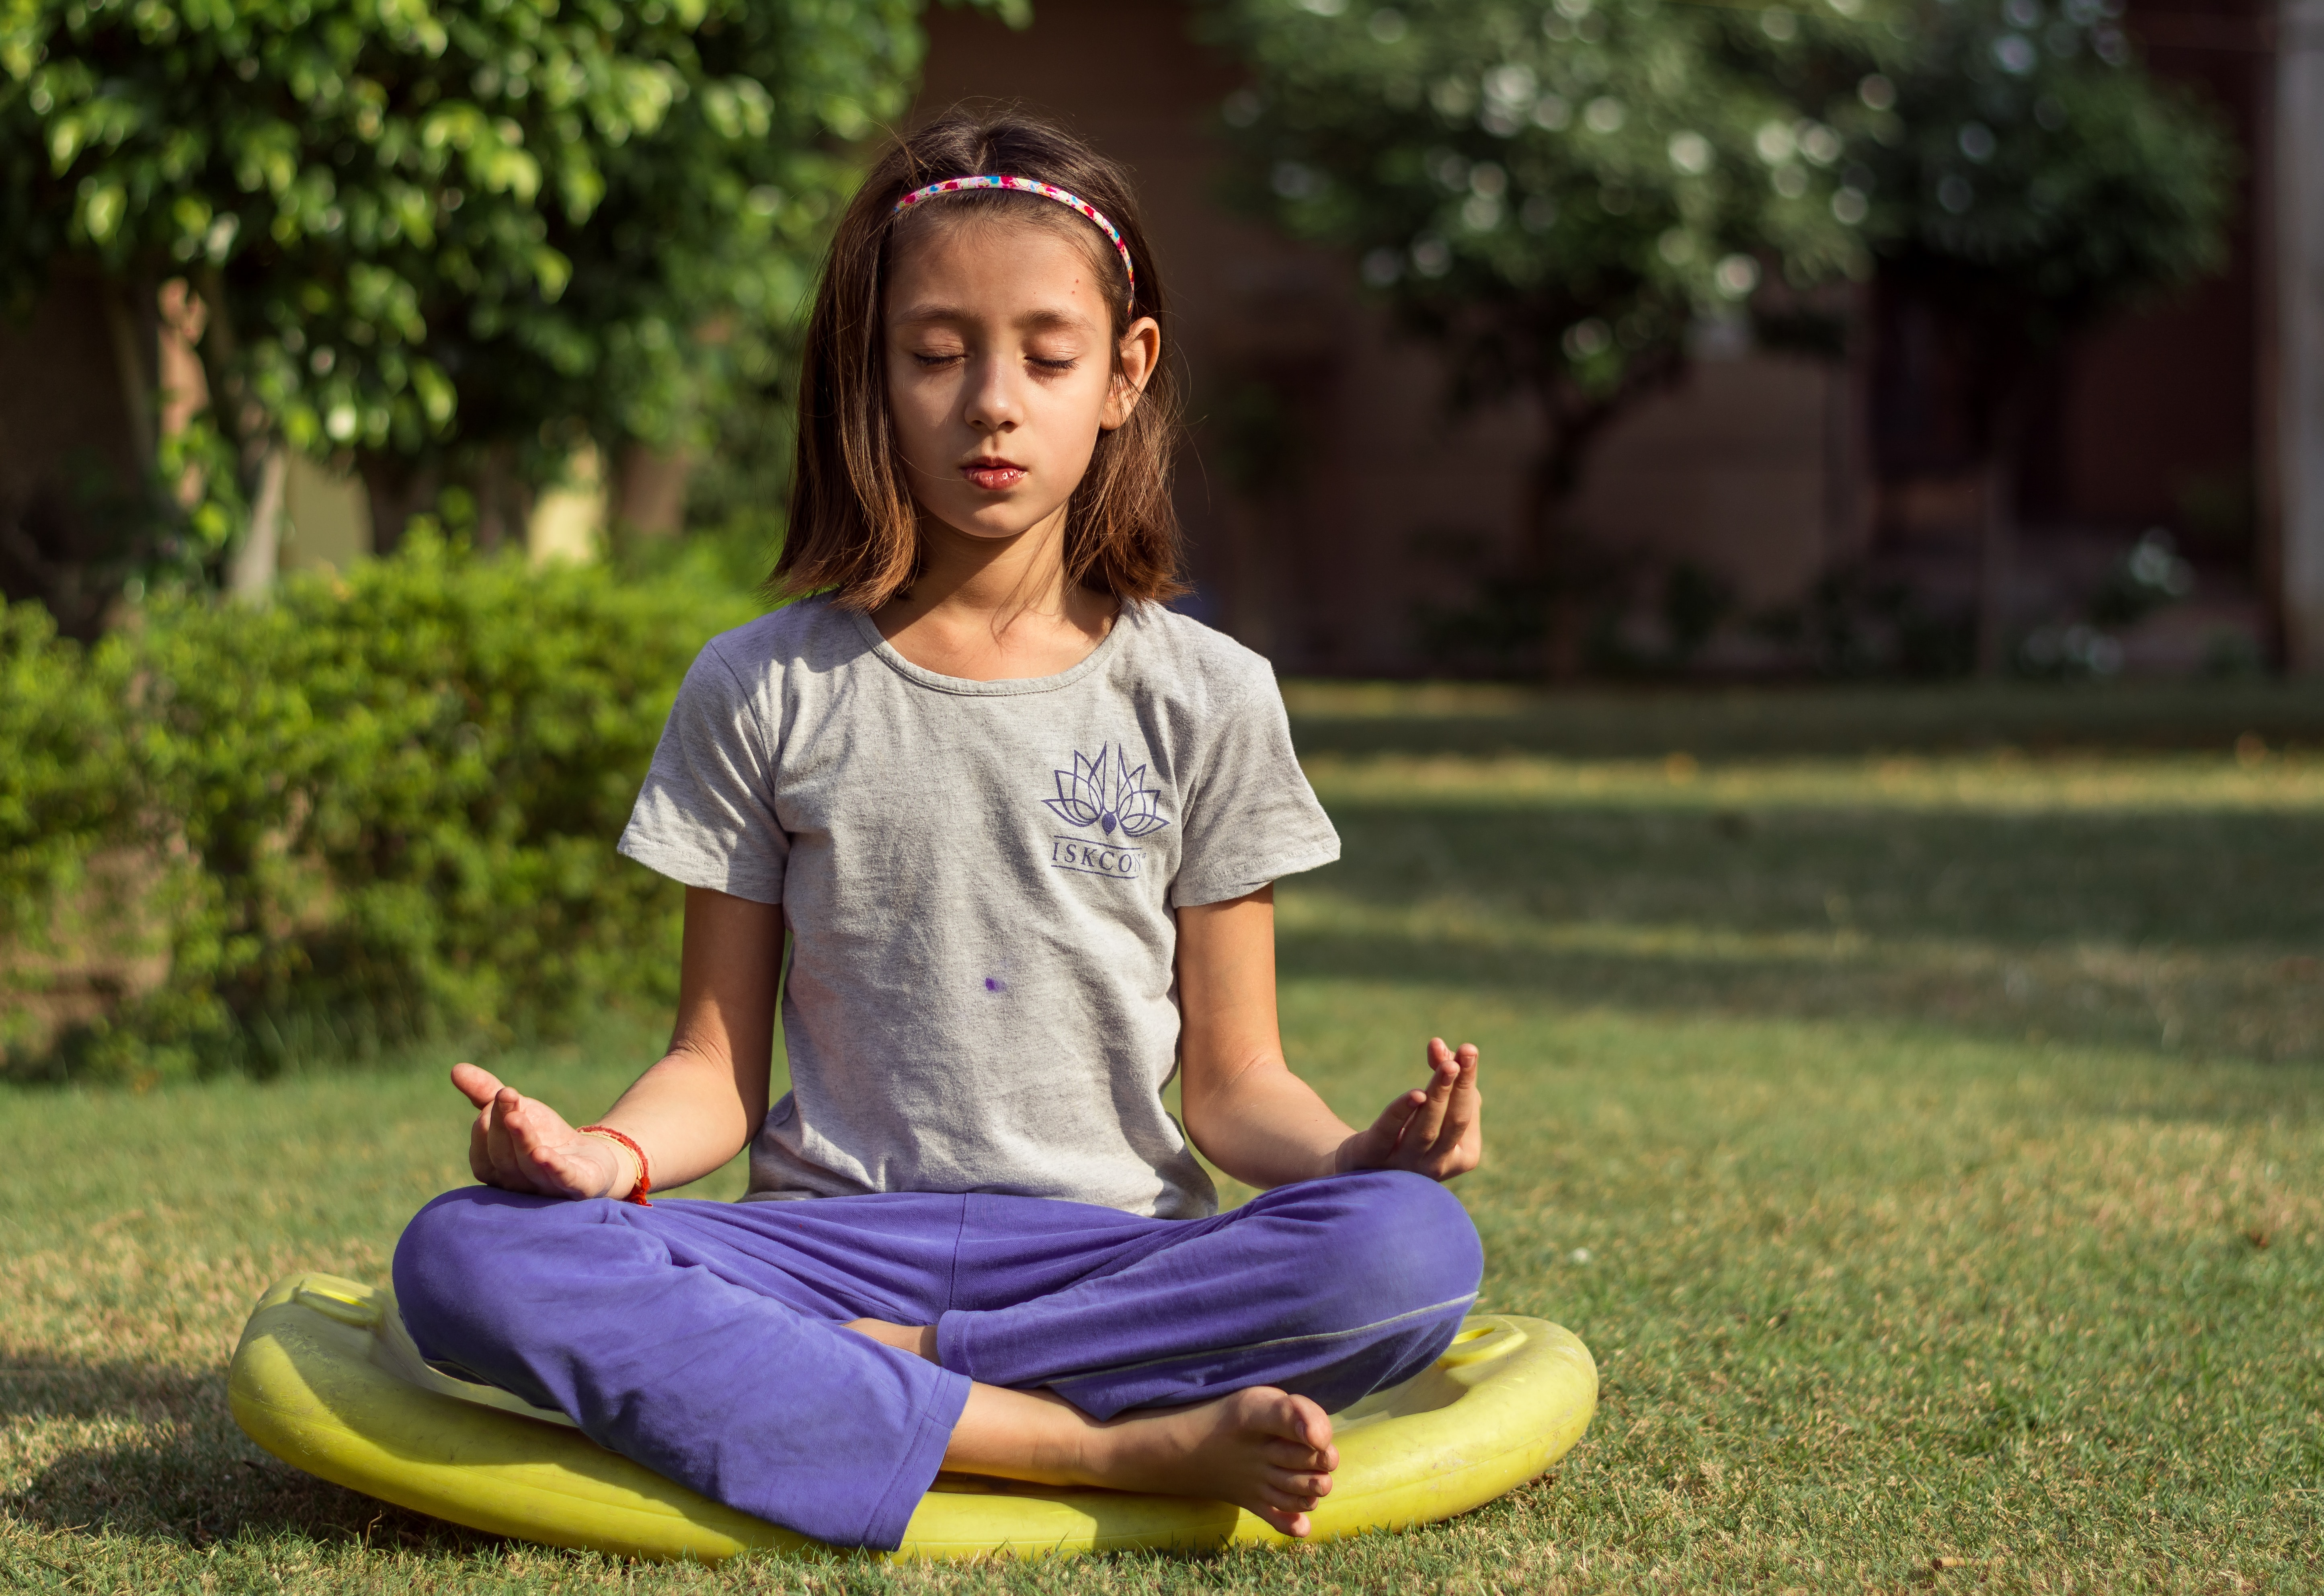 Meditation is very beneficial for a child's mental health.